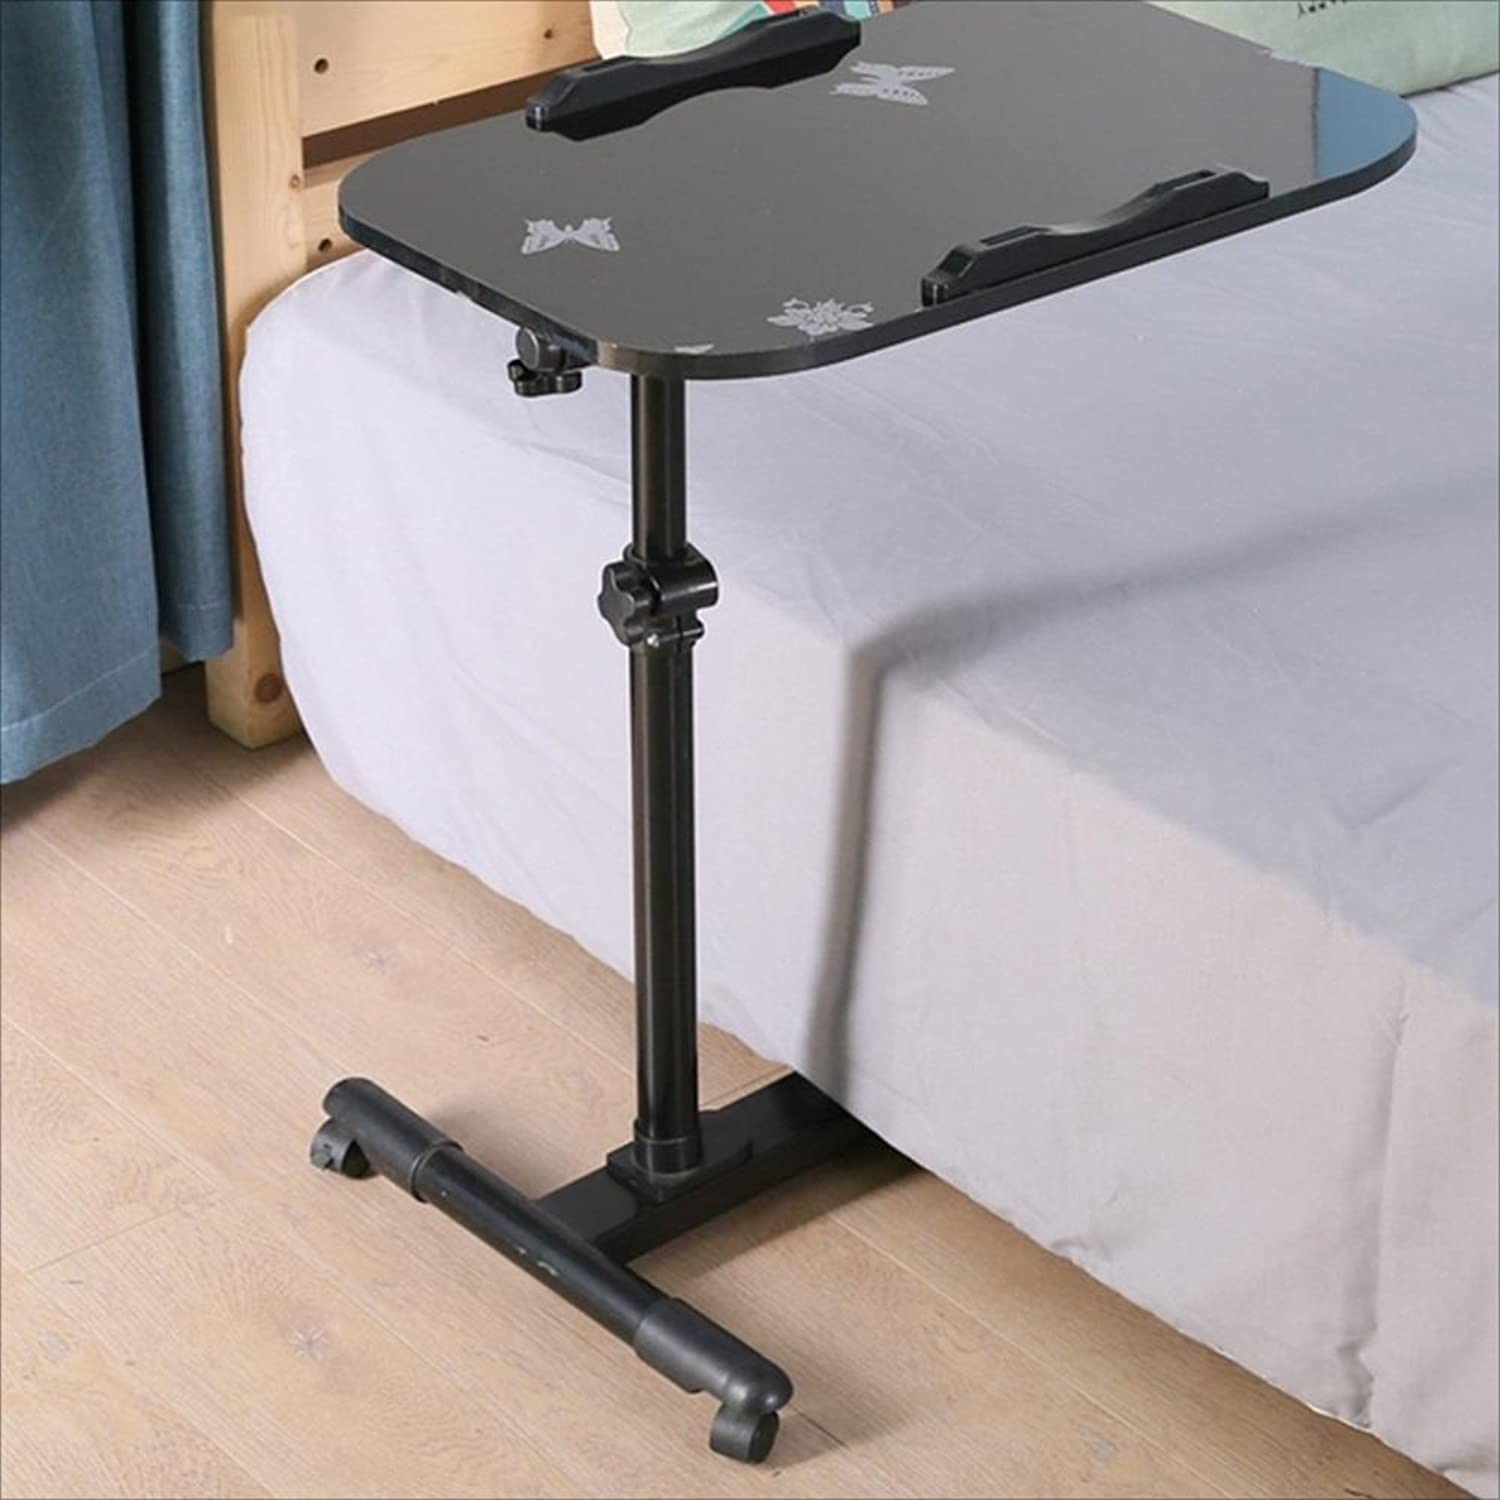 NAN Desktop Laptop Table Folding Table Lazy Bed Desk Household Fold Mobile Liftable Bedside Table Black, White Folding Tables (color   B)